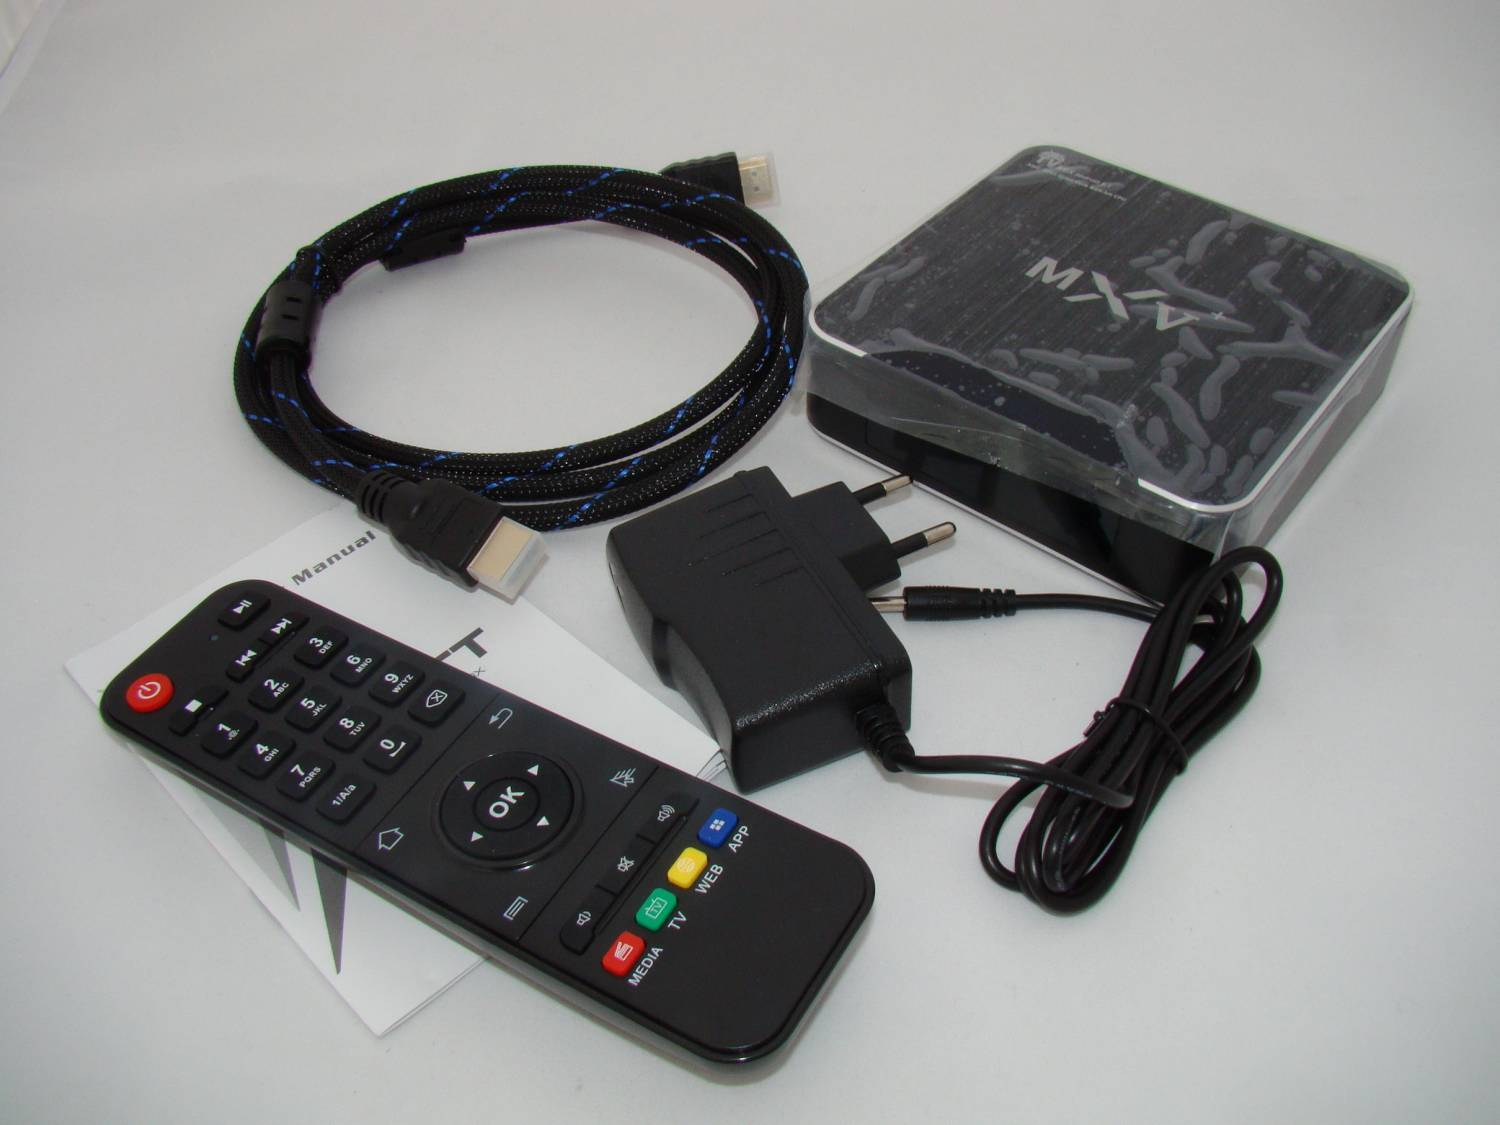 TomTop: MXV+ (MXV Plus) S905 Smart Android TV Box Android 5.1